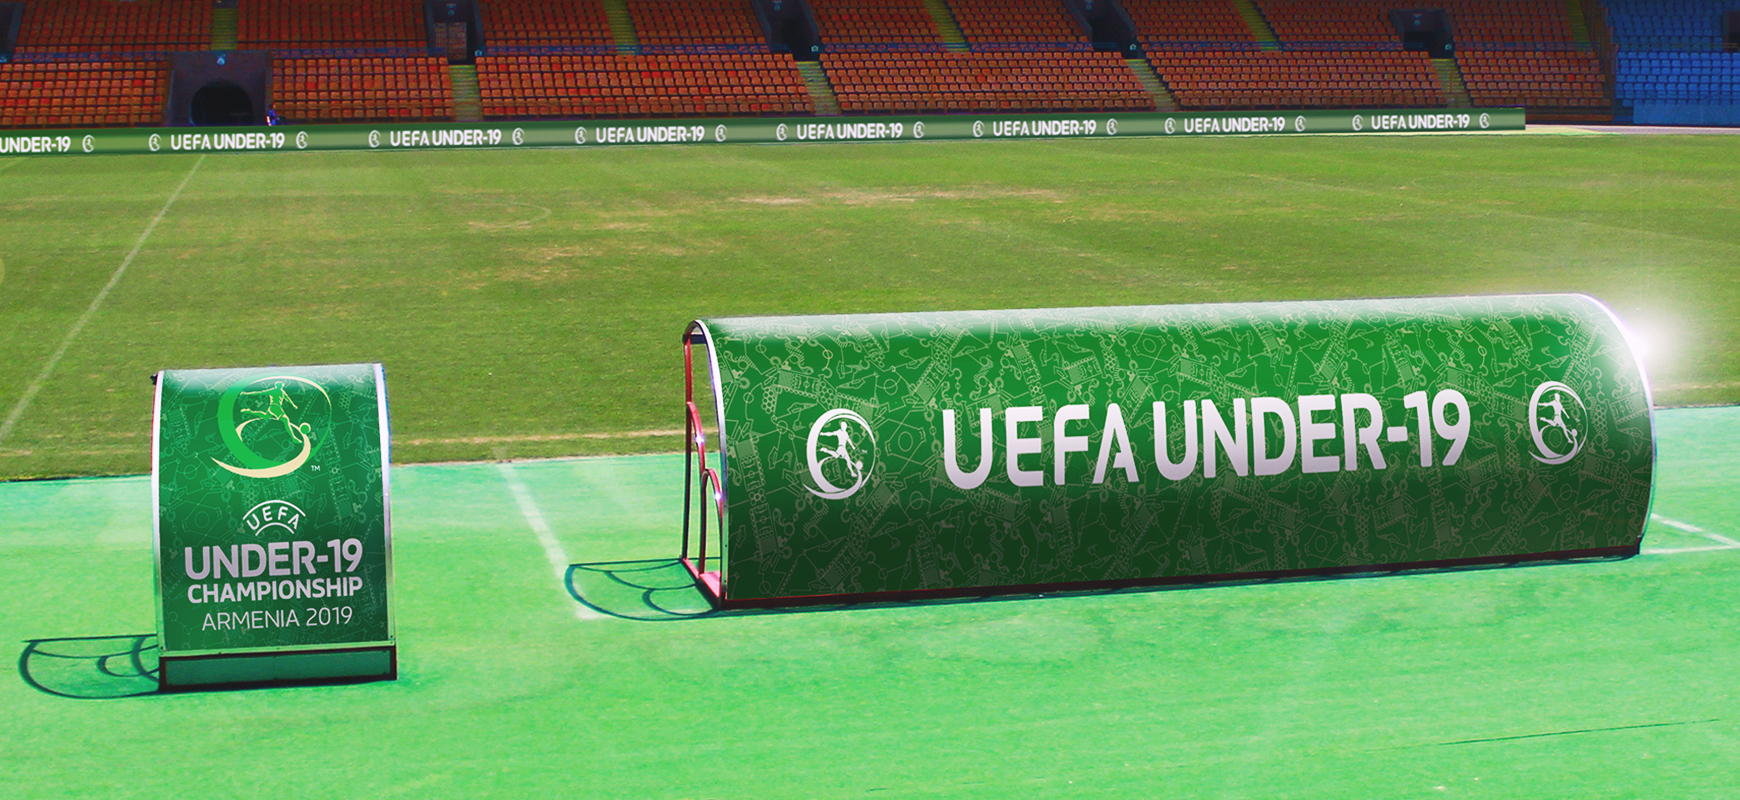 UEFA arena signs displaying the championship name and logo made of vinyl